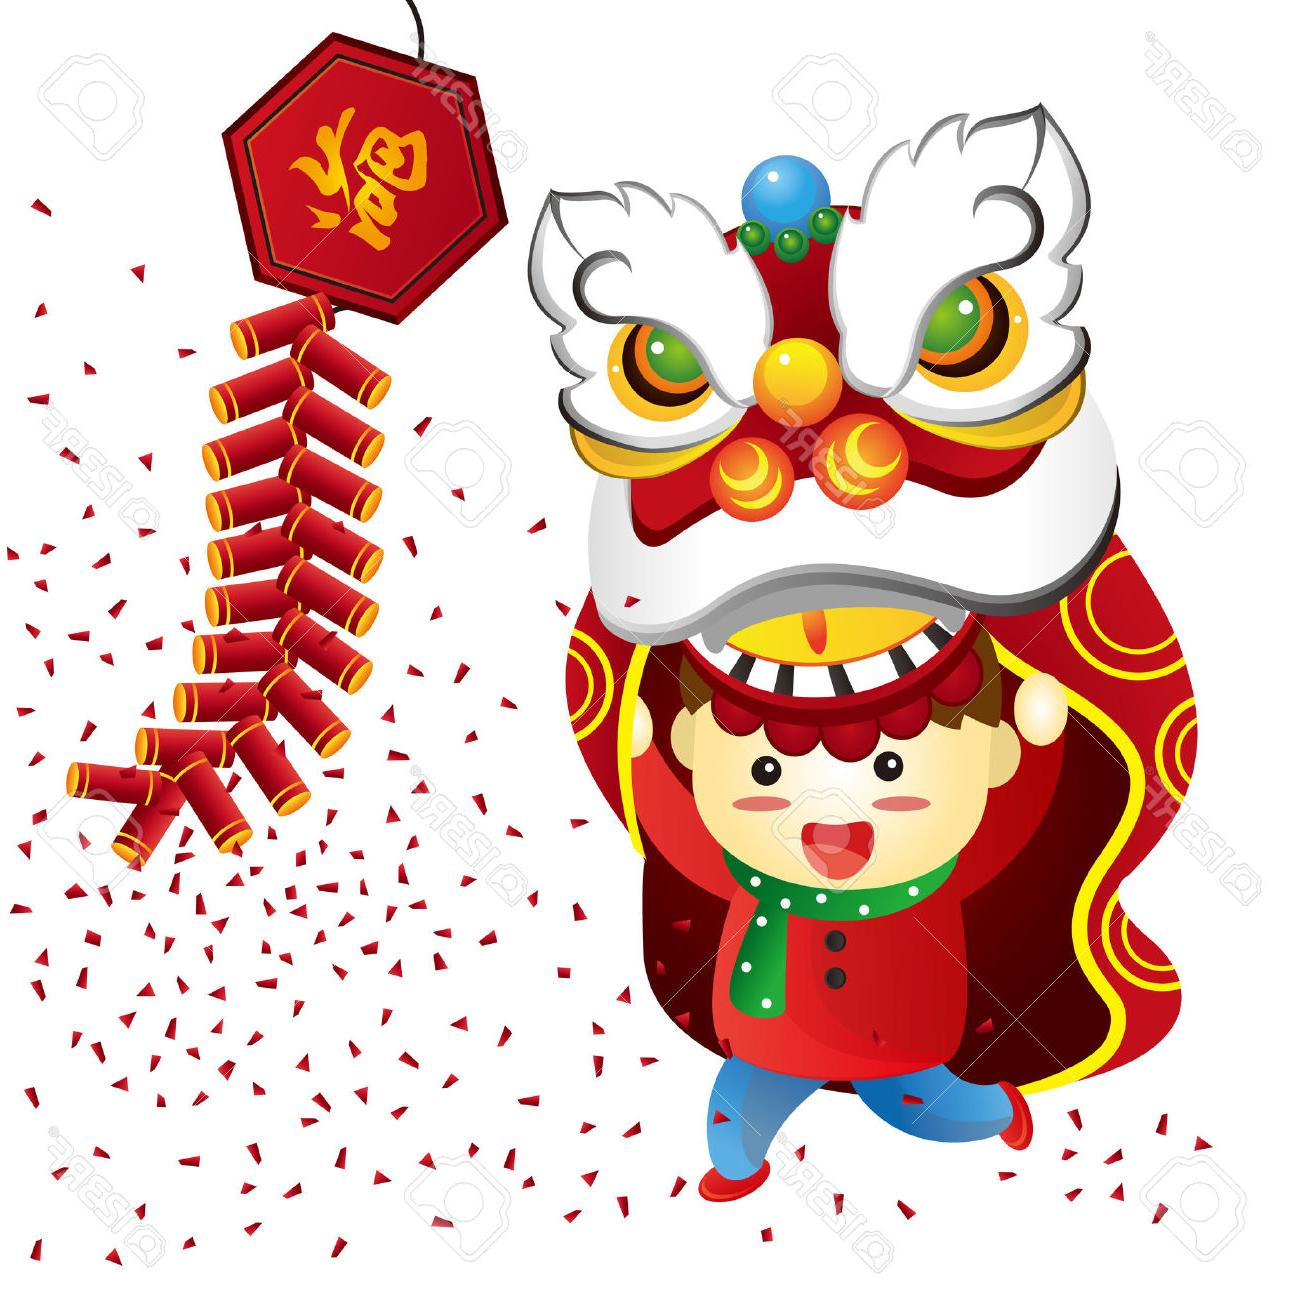 Hd animation cartoon lunar. Chinese clipart chinese new year